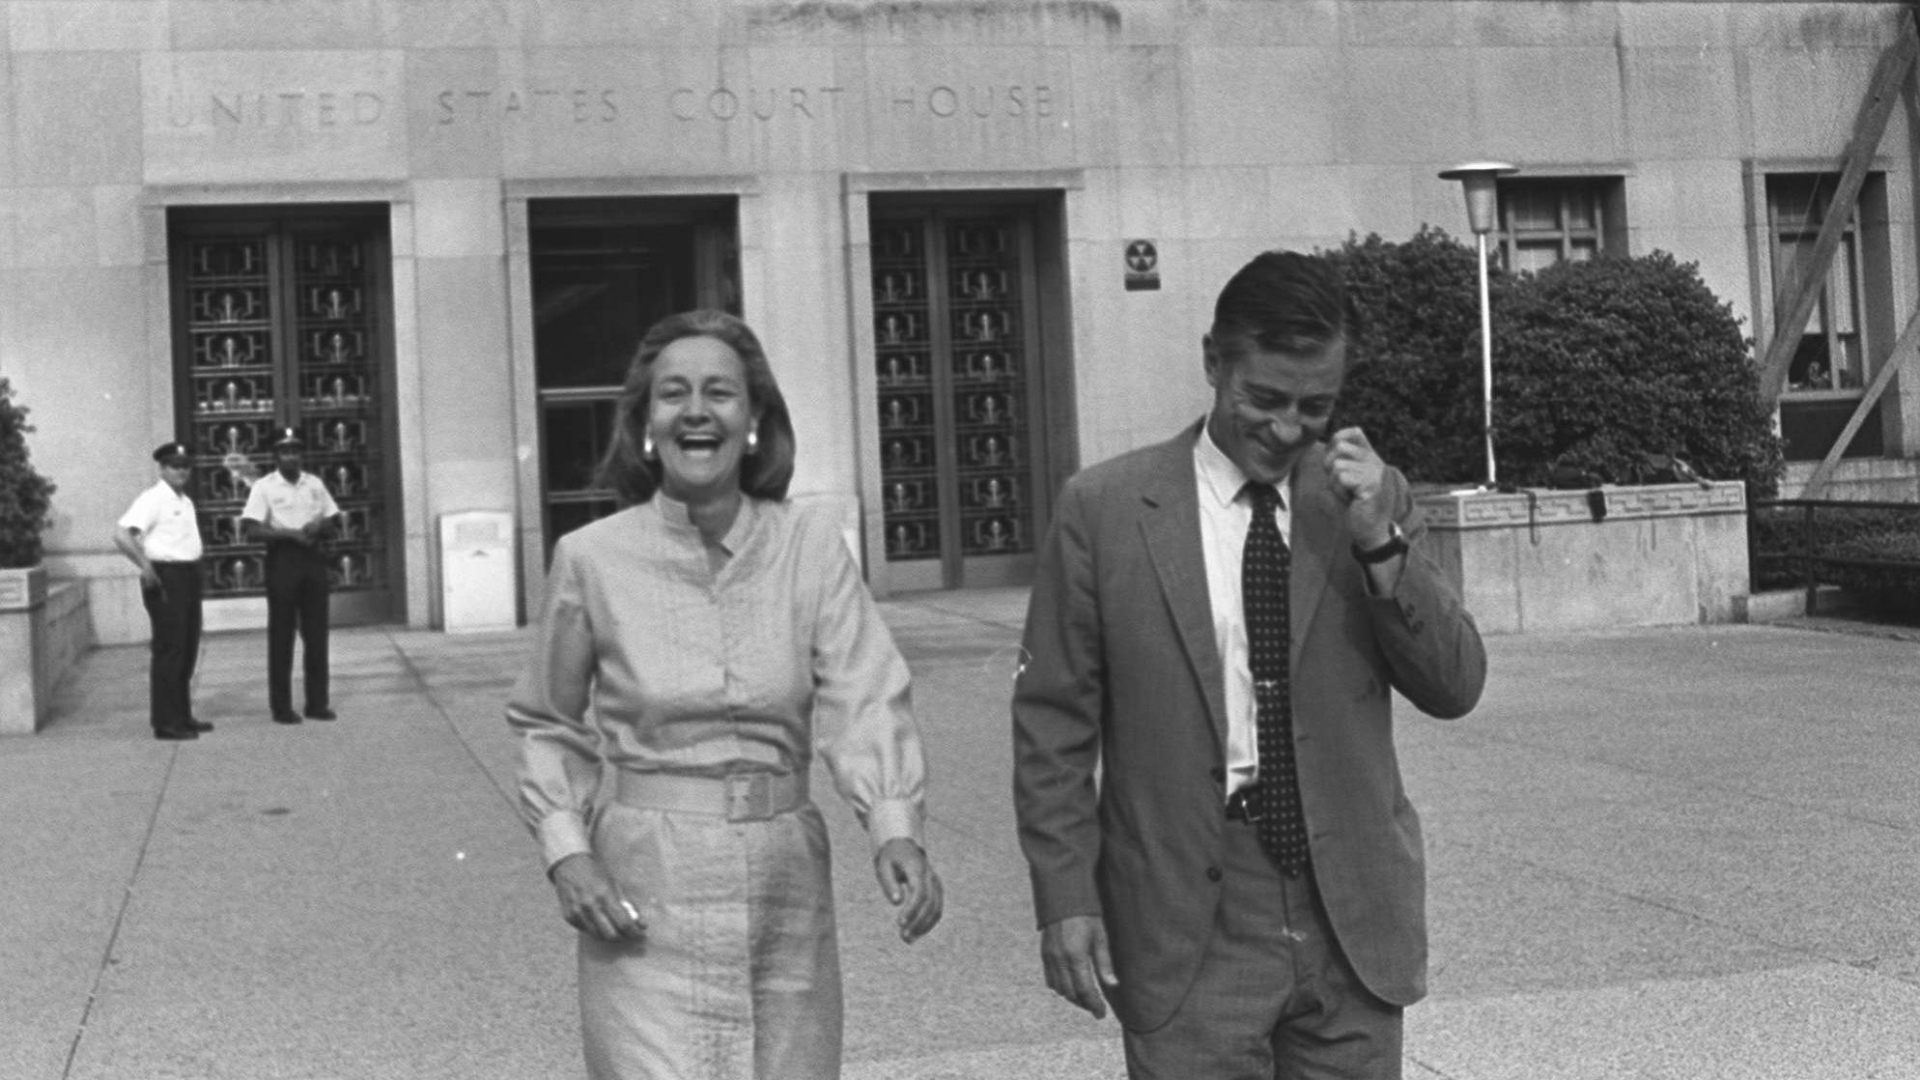 Washington Post Publisher Katharine Graham and Execuctive Editor Ben Bradlee leave U.S. District Court in Washington June 21, 1971, after Judge Gerhard A. Gesell's rules the the paper could publish further articles about the Pentagon Papers. (Credit: STF/BD/AP Photo)